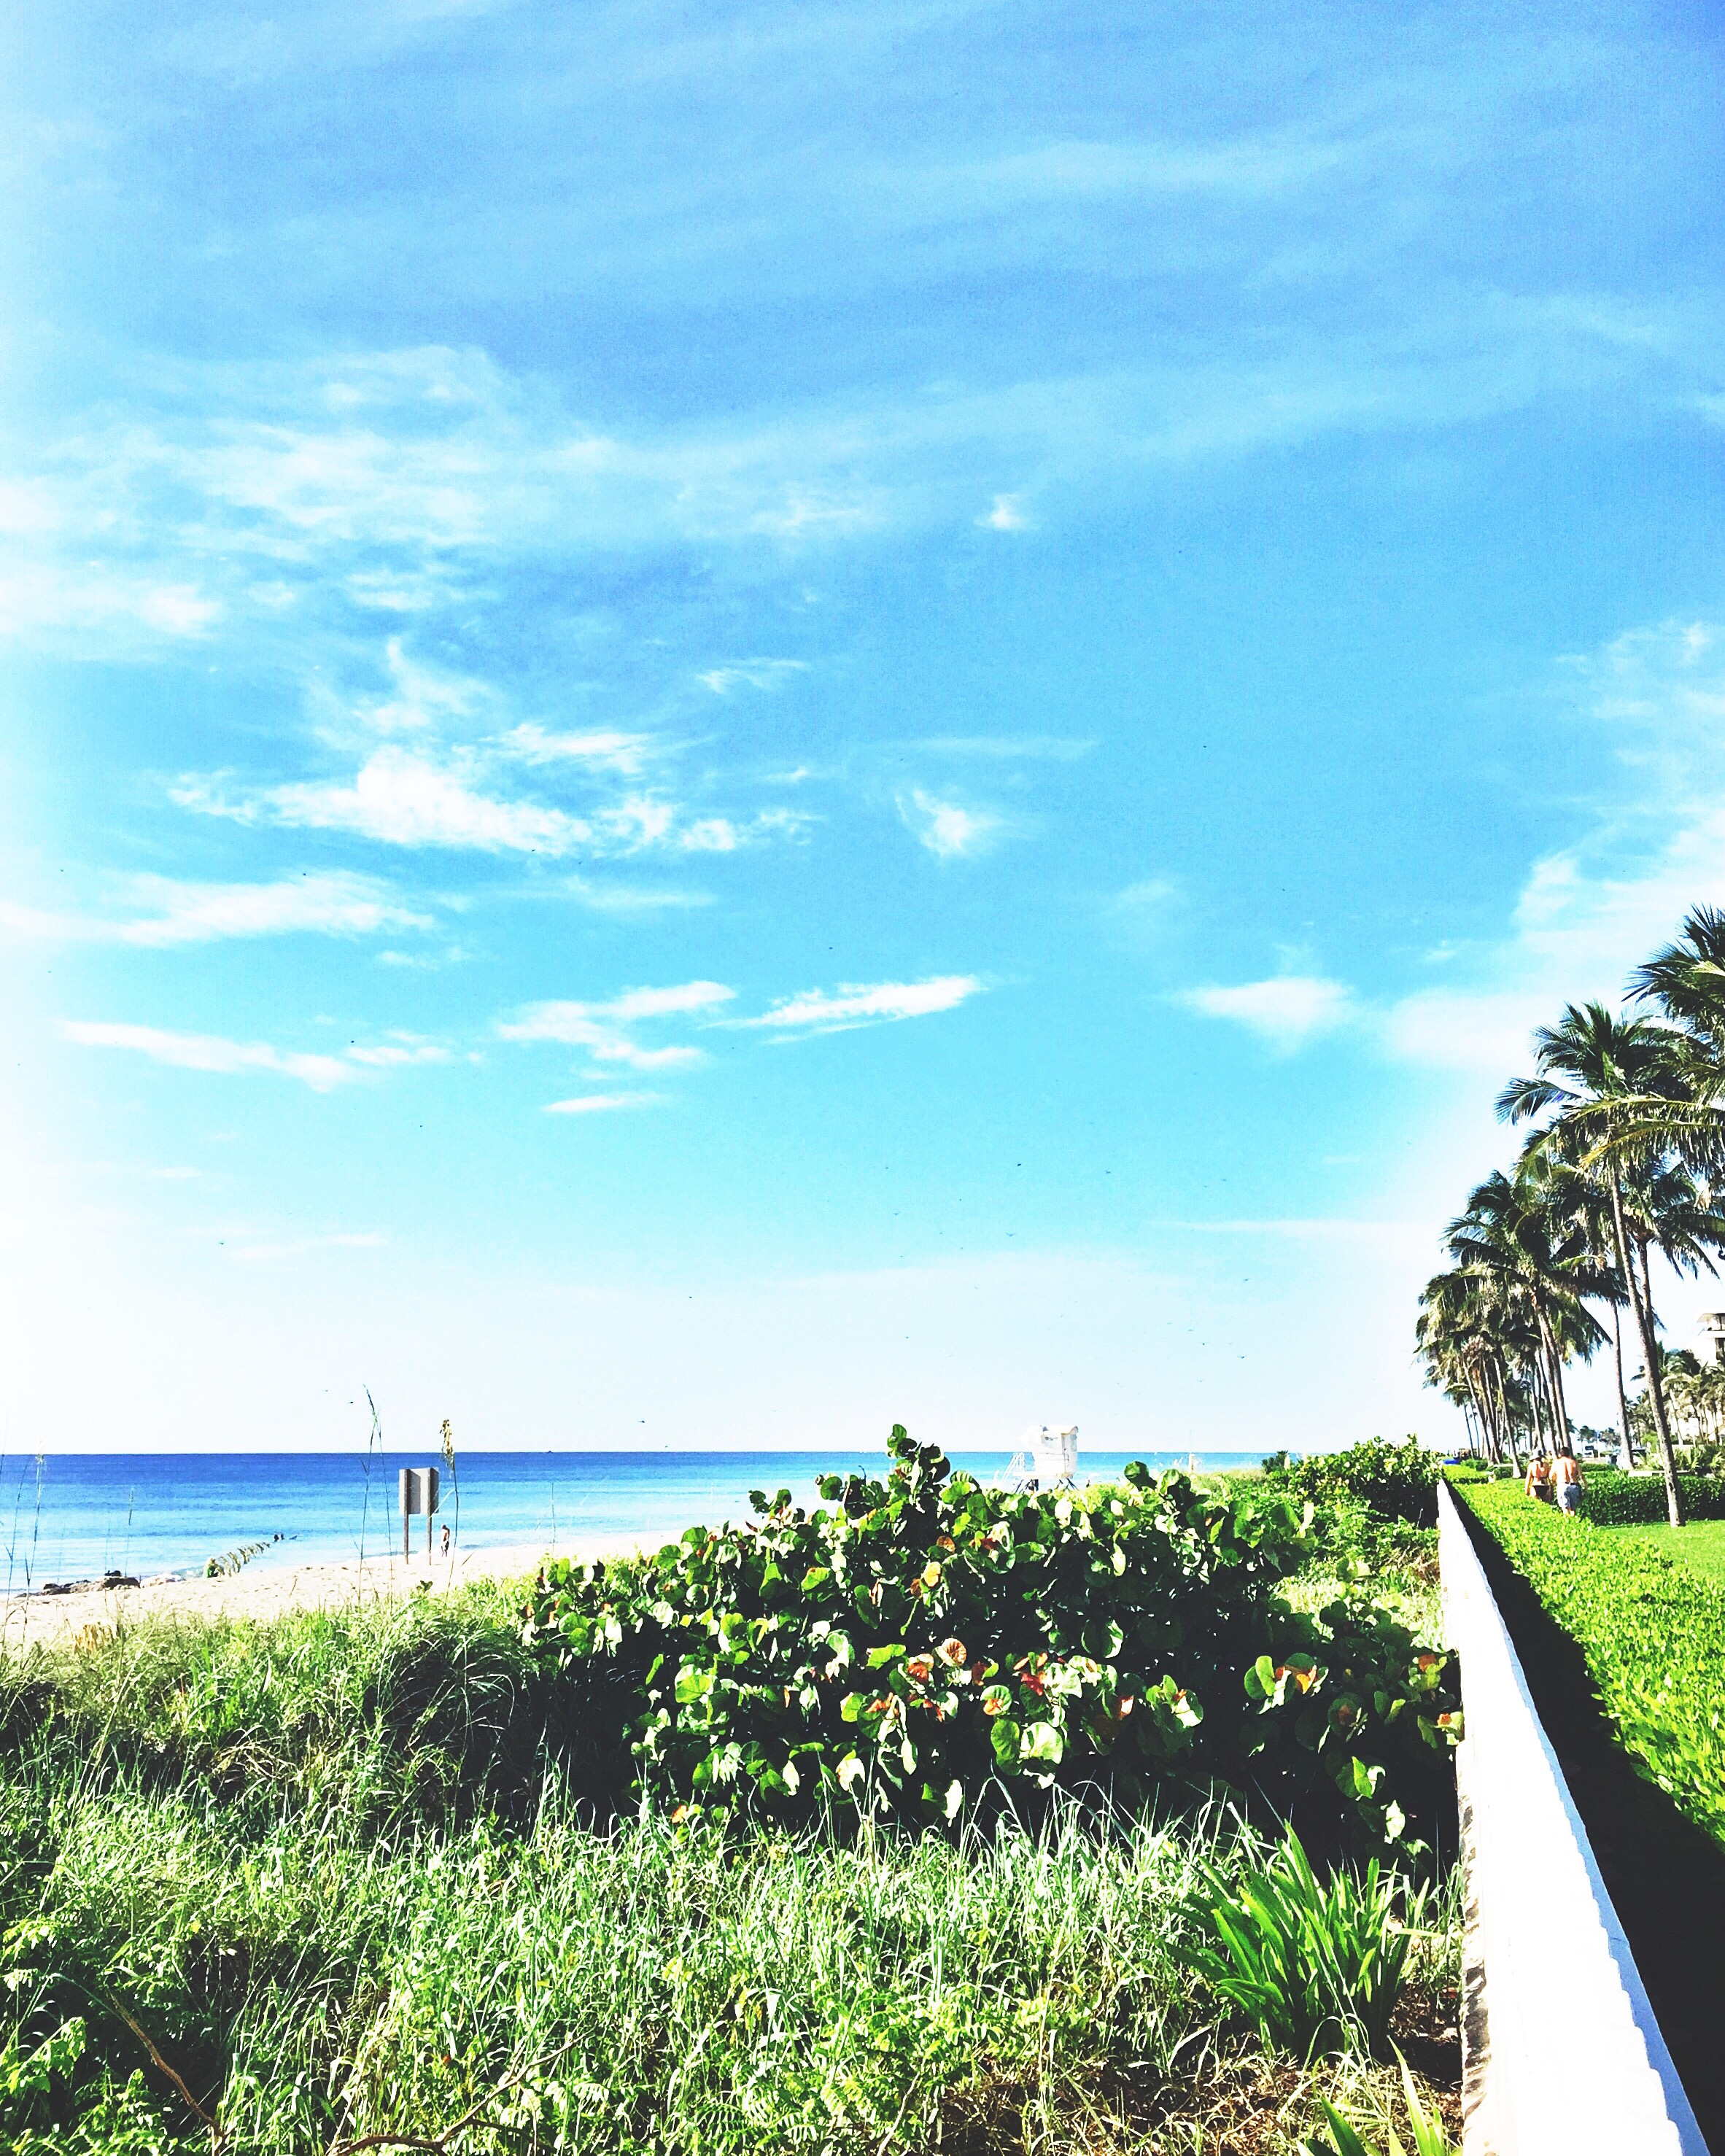 The beach is the perfect place to end up after a walk,jog, or longboard ride.